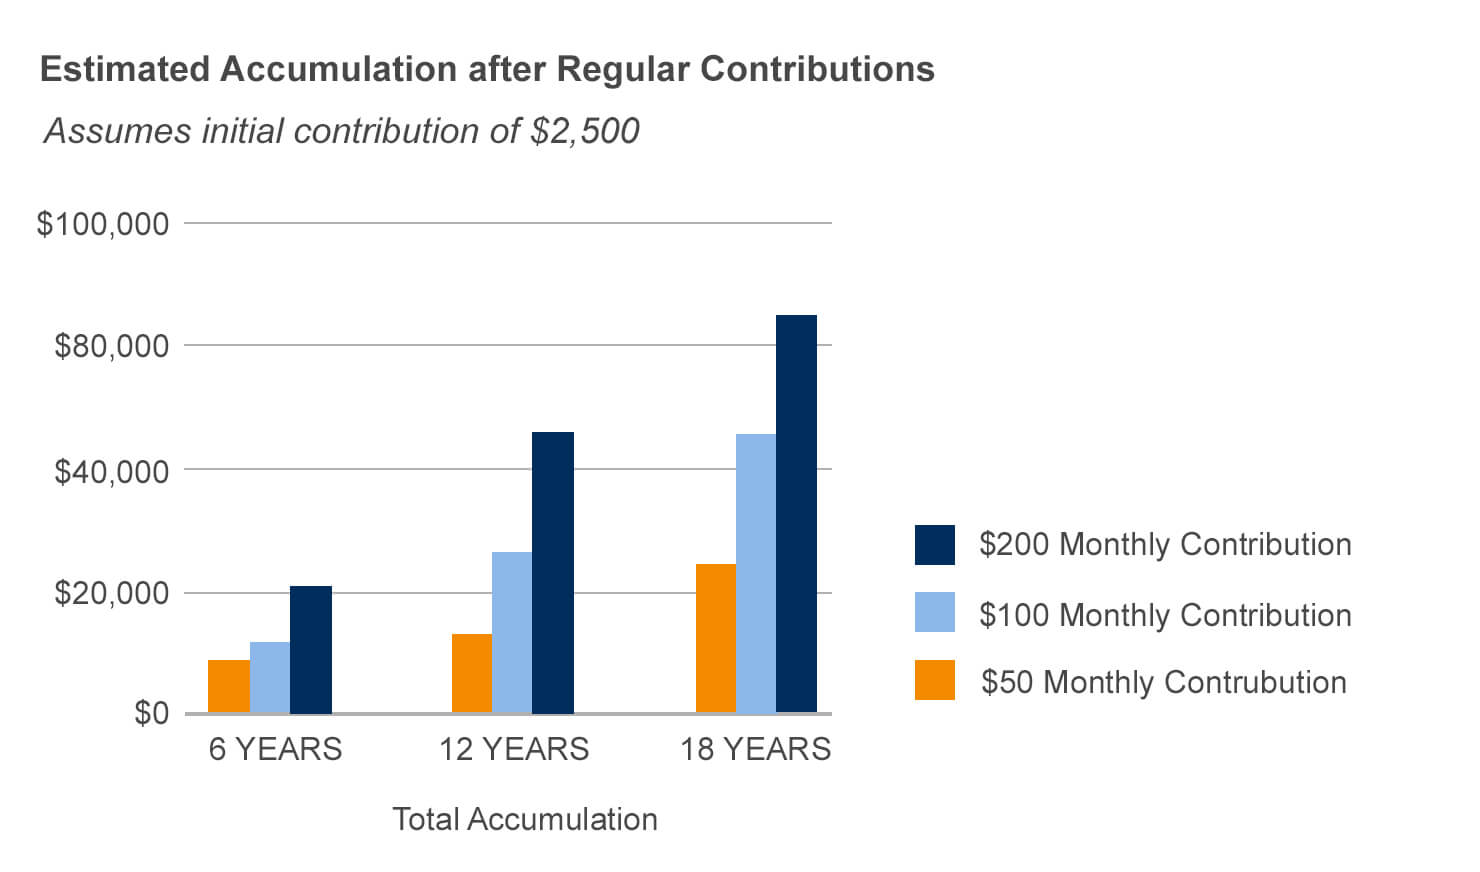 Estimated Accumulation After Regular Contributions